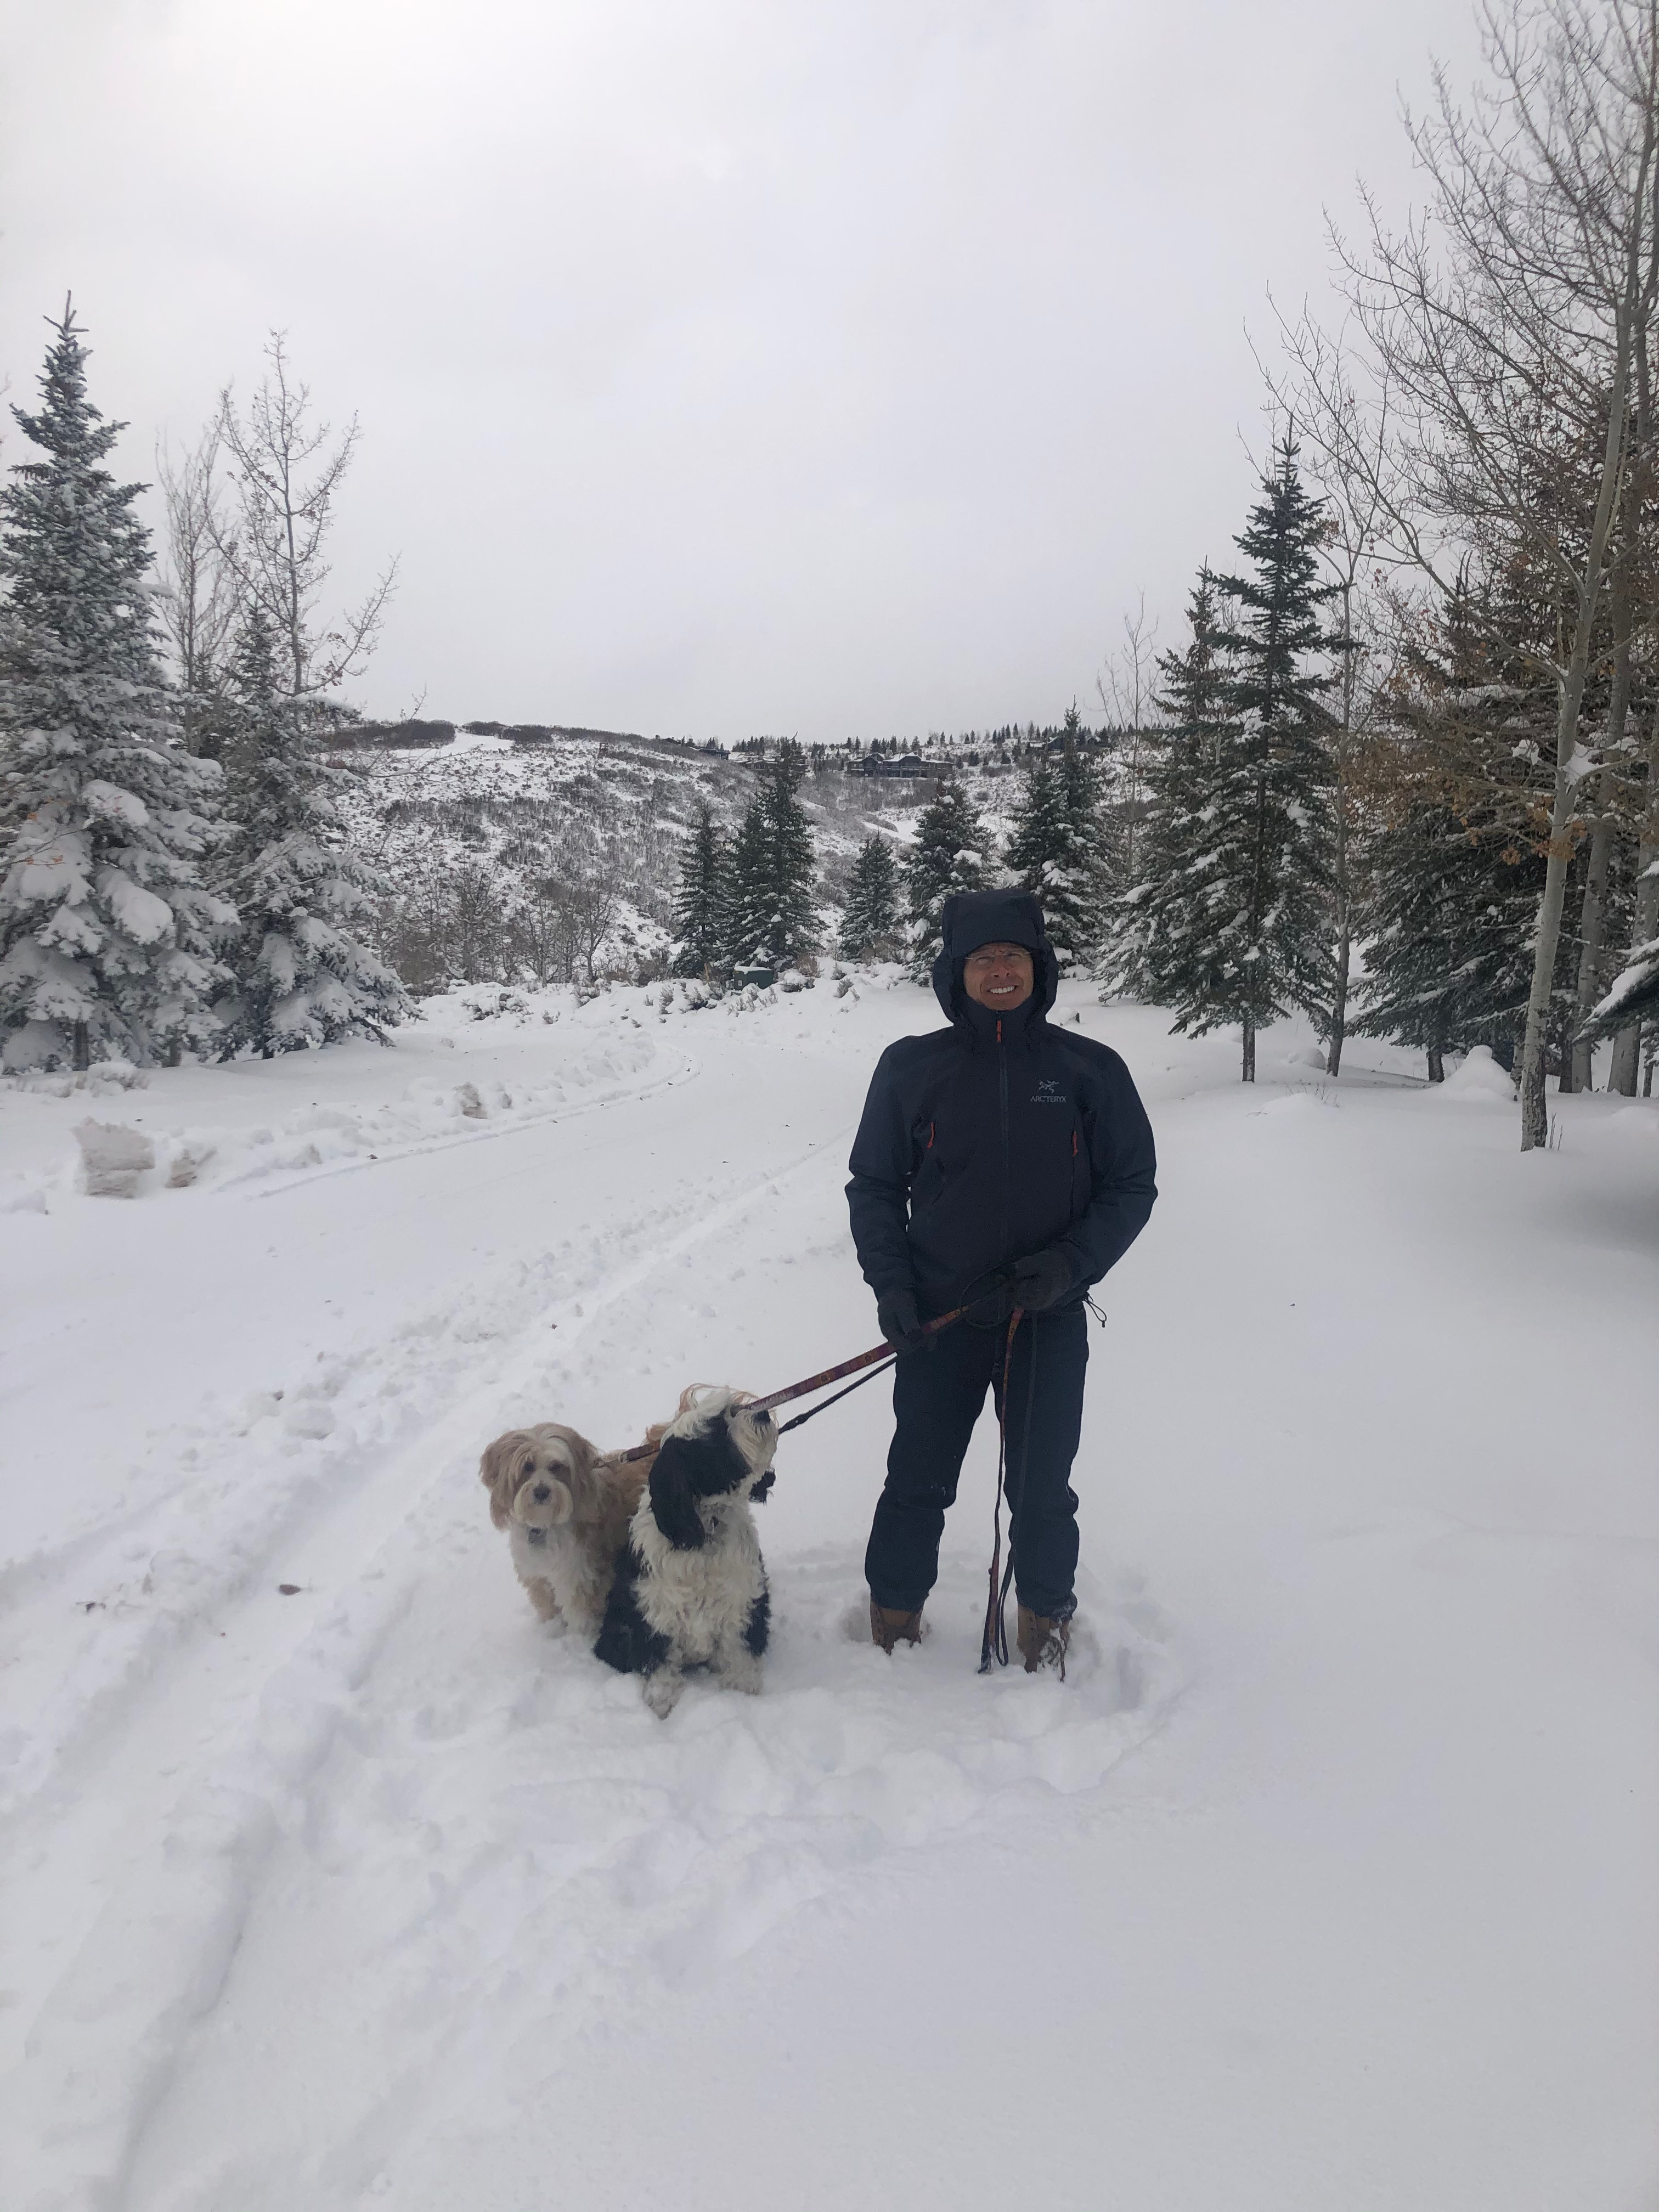 Papa Carhart with the dogs in the snow